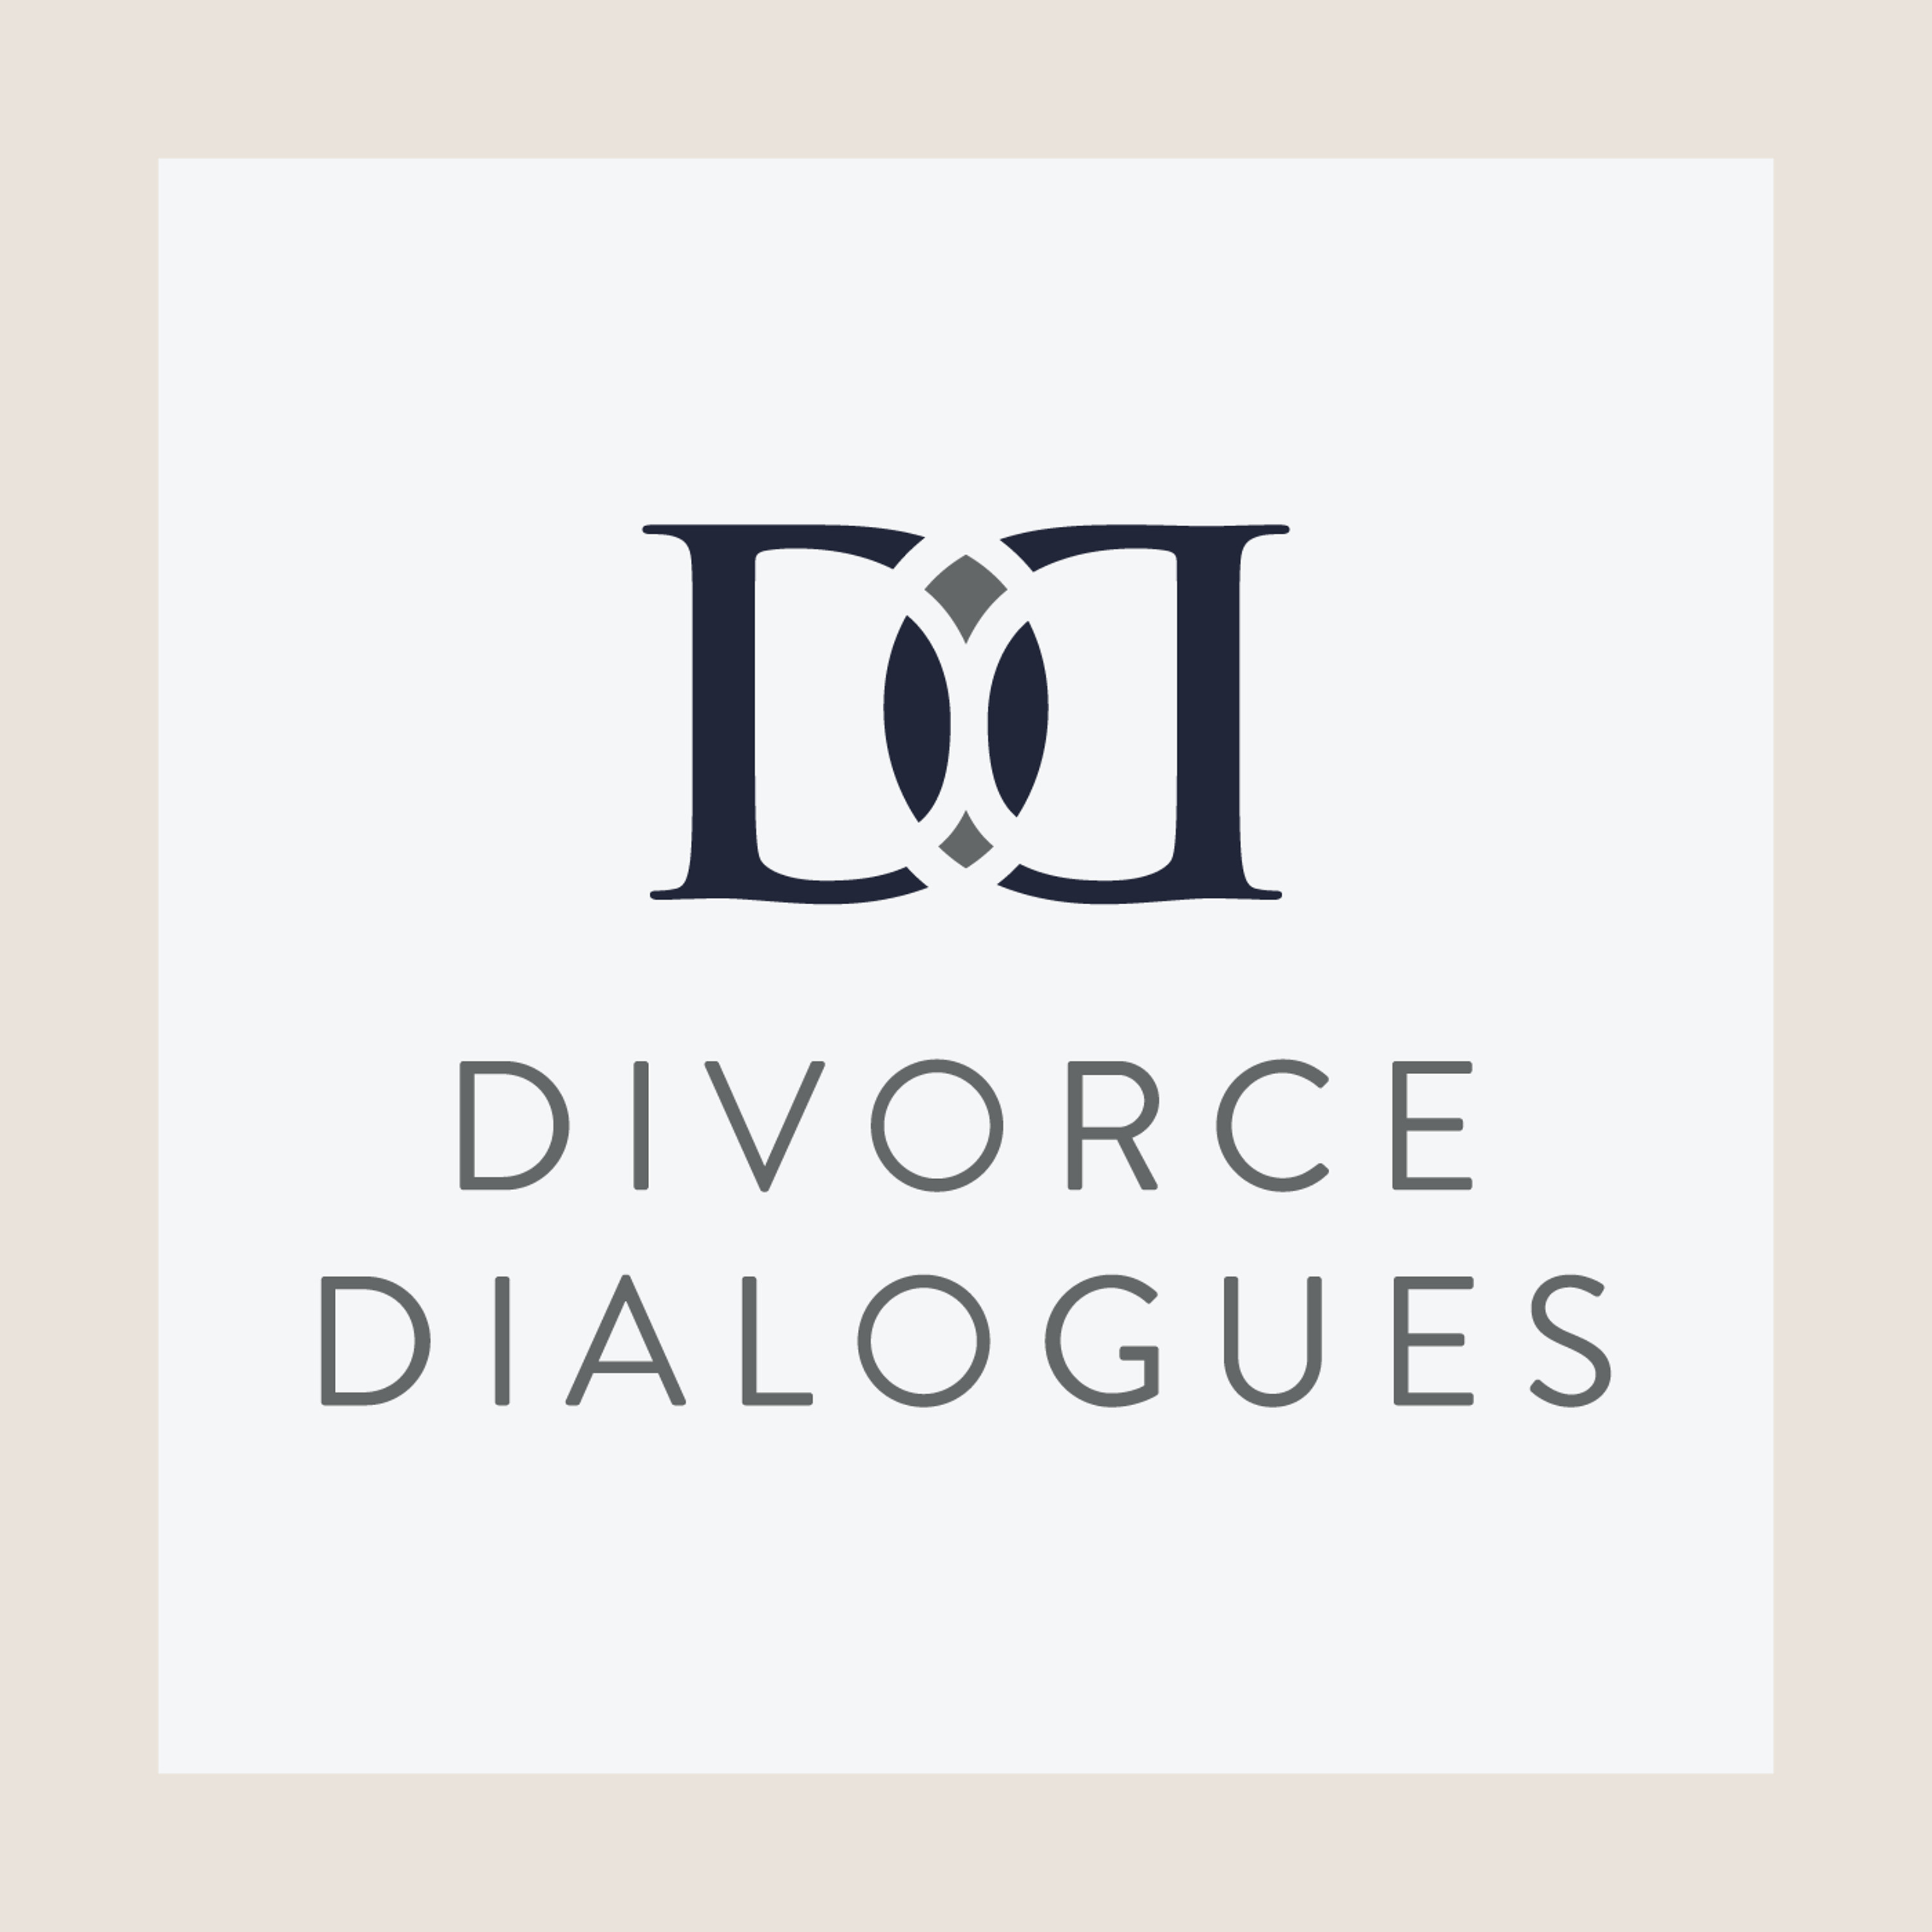 Divorce Dialogues - A Top Hostage Negotiator's Approach to Divorce with Chris Voss